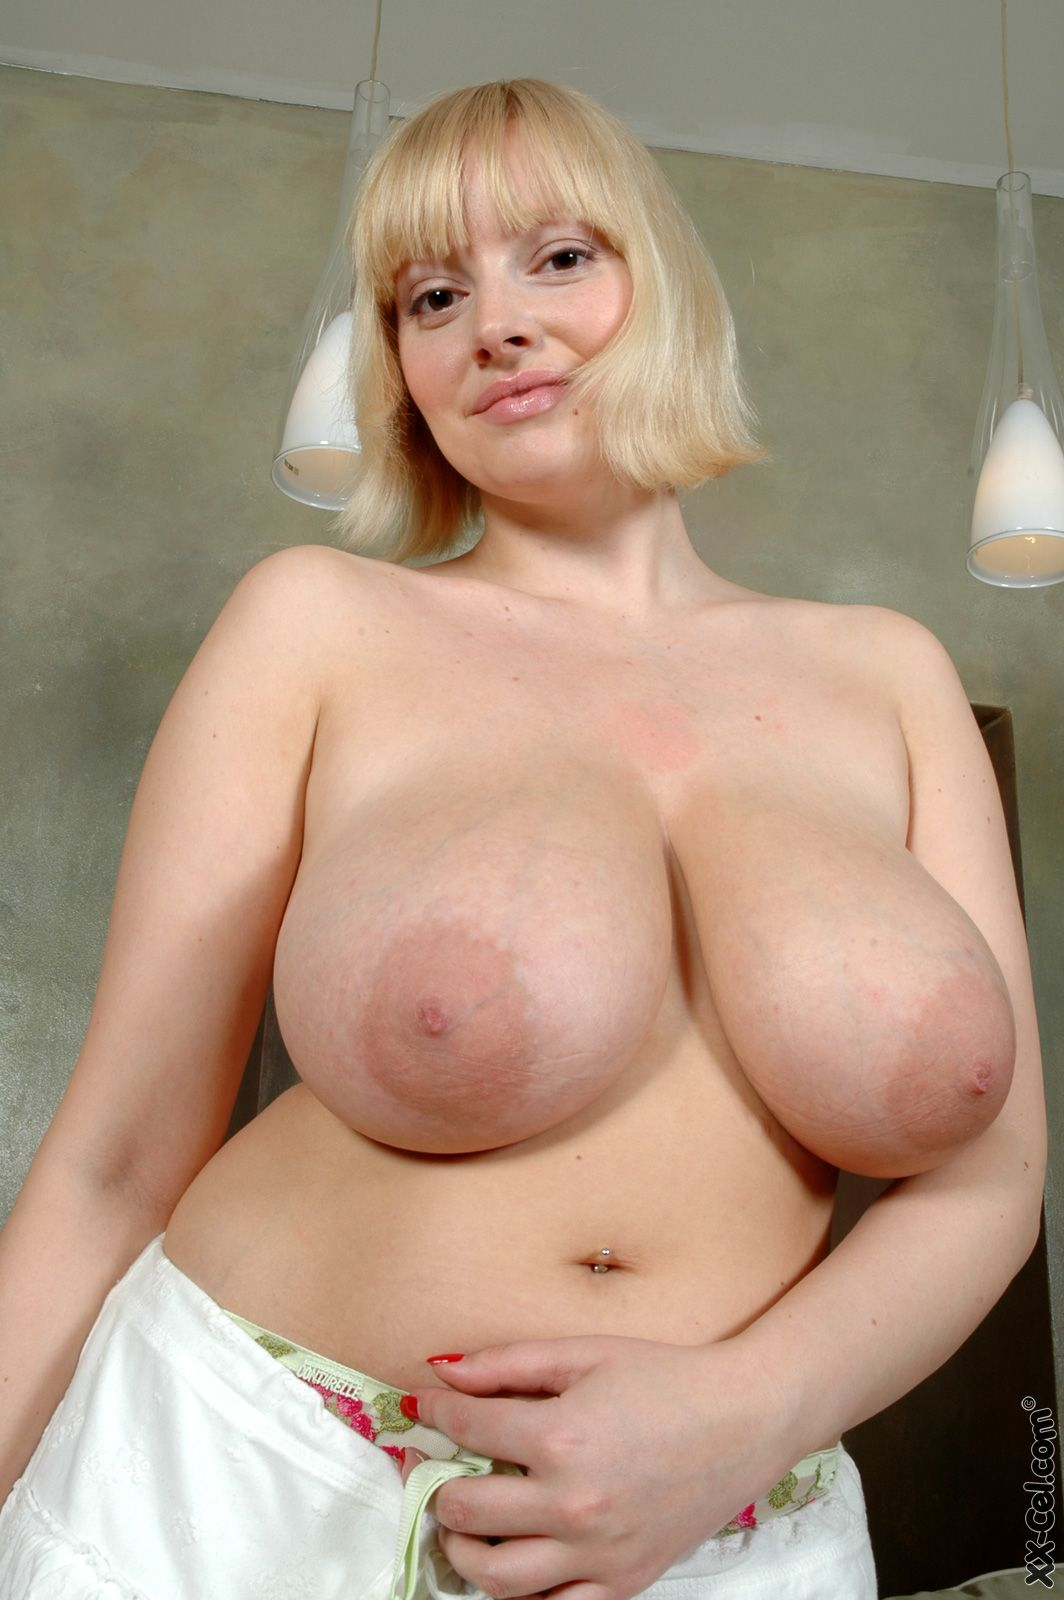 Big tits with large areolas